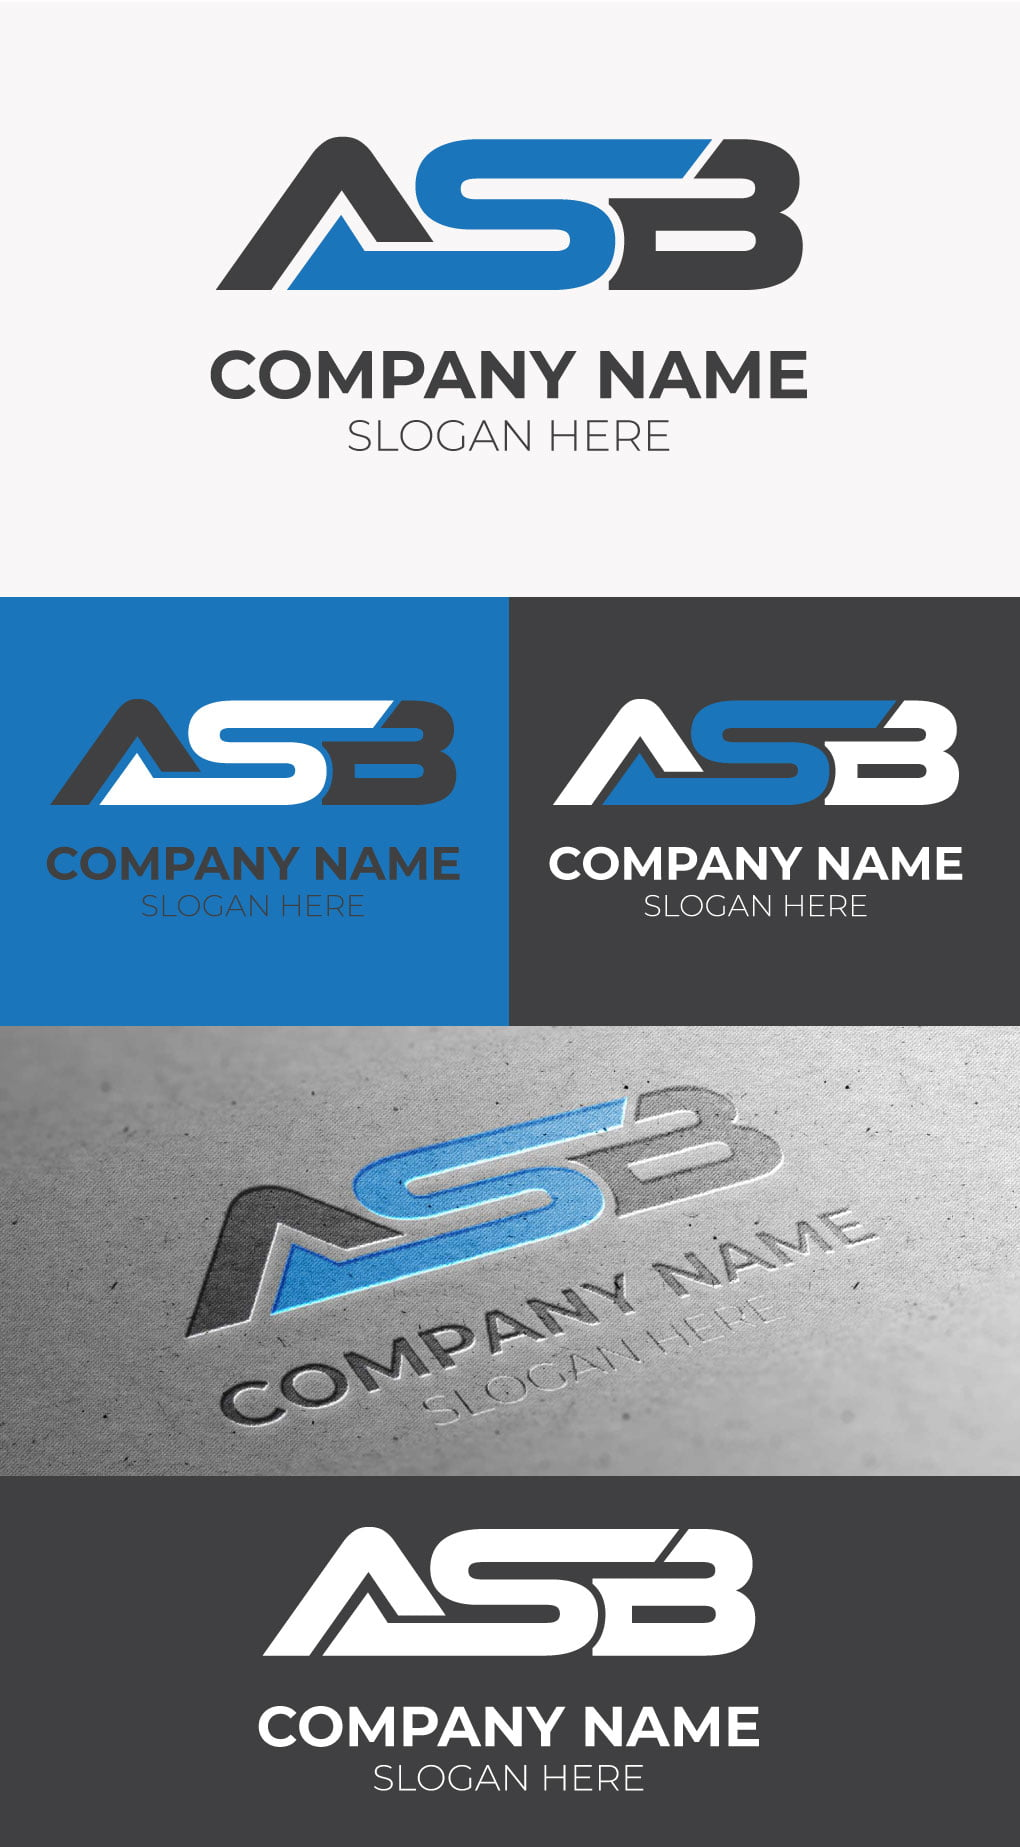 ASB LETTER LOGO FREE TEMPLATE